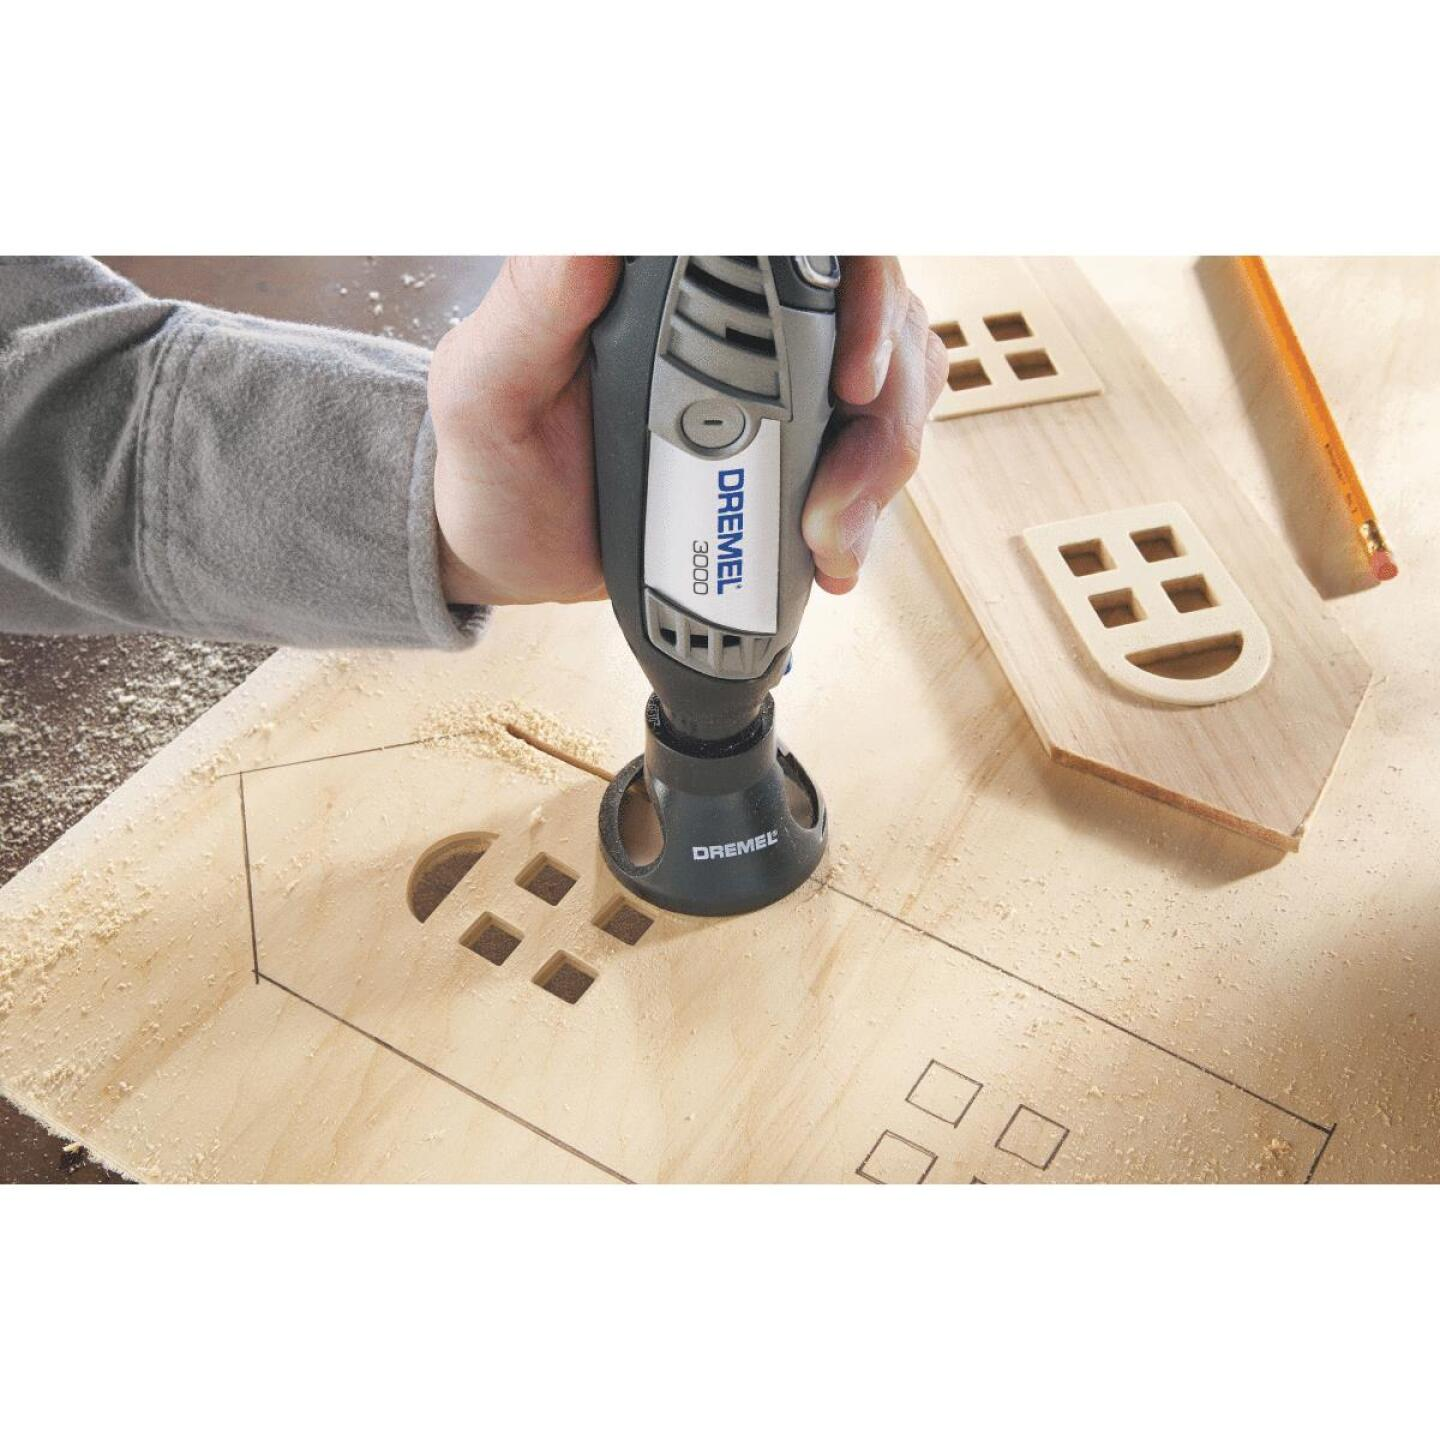 Dremel 120-Volt 1.2-Amp Variable Speed Electric Rotary Tool Kit Image 3